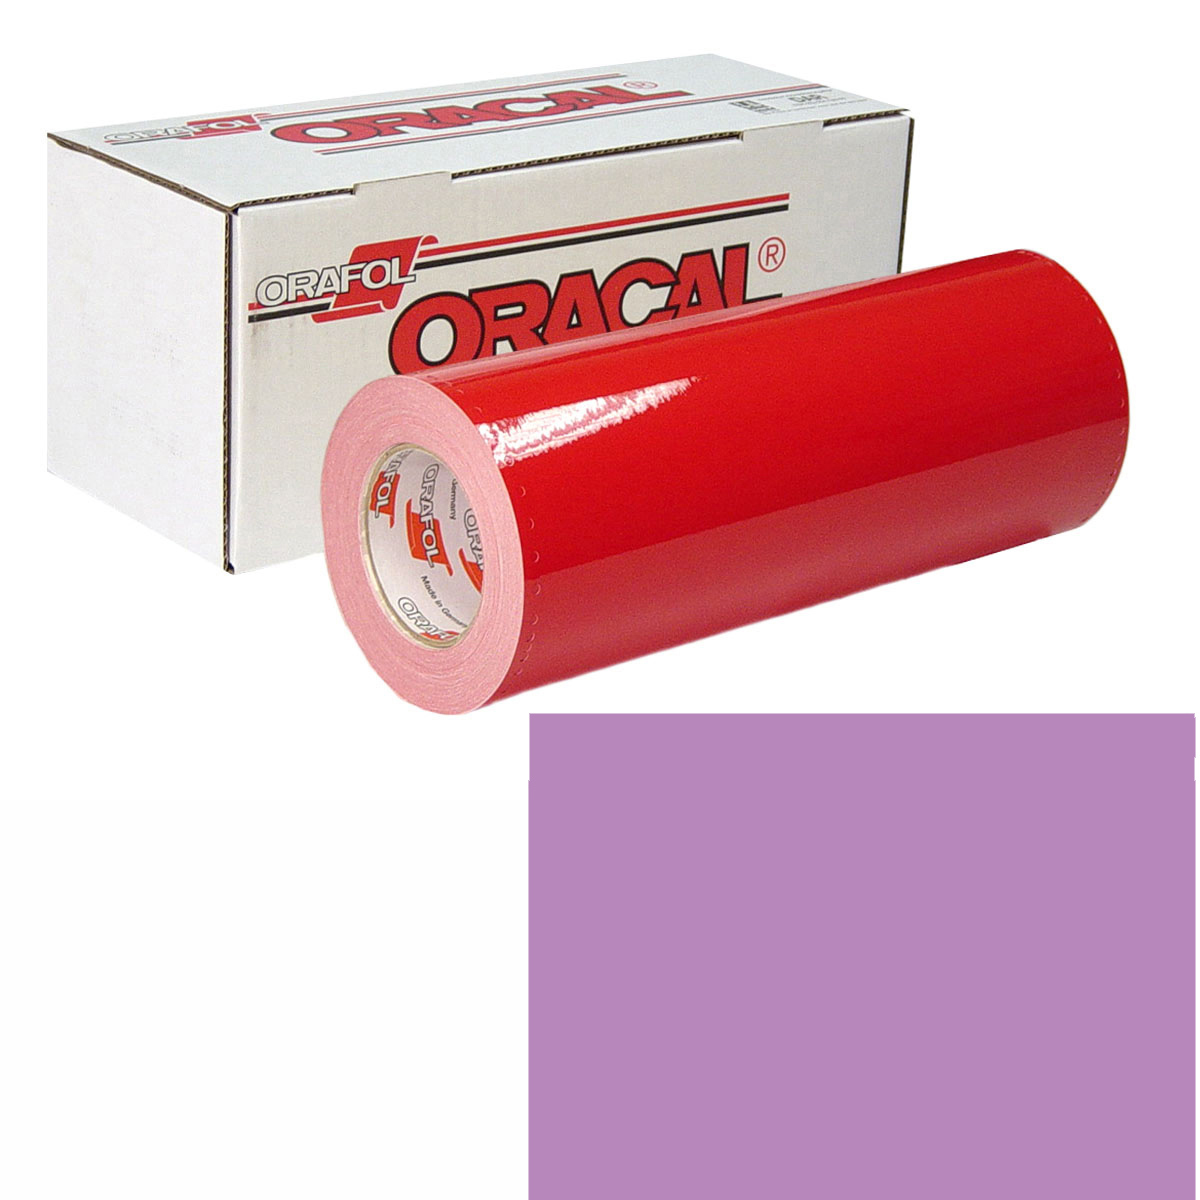 ORACAL 951 15in X 50yd 409 Pale Lilac